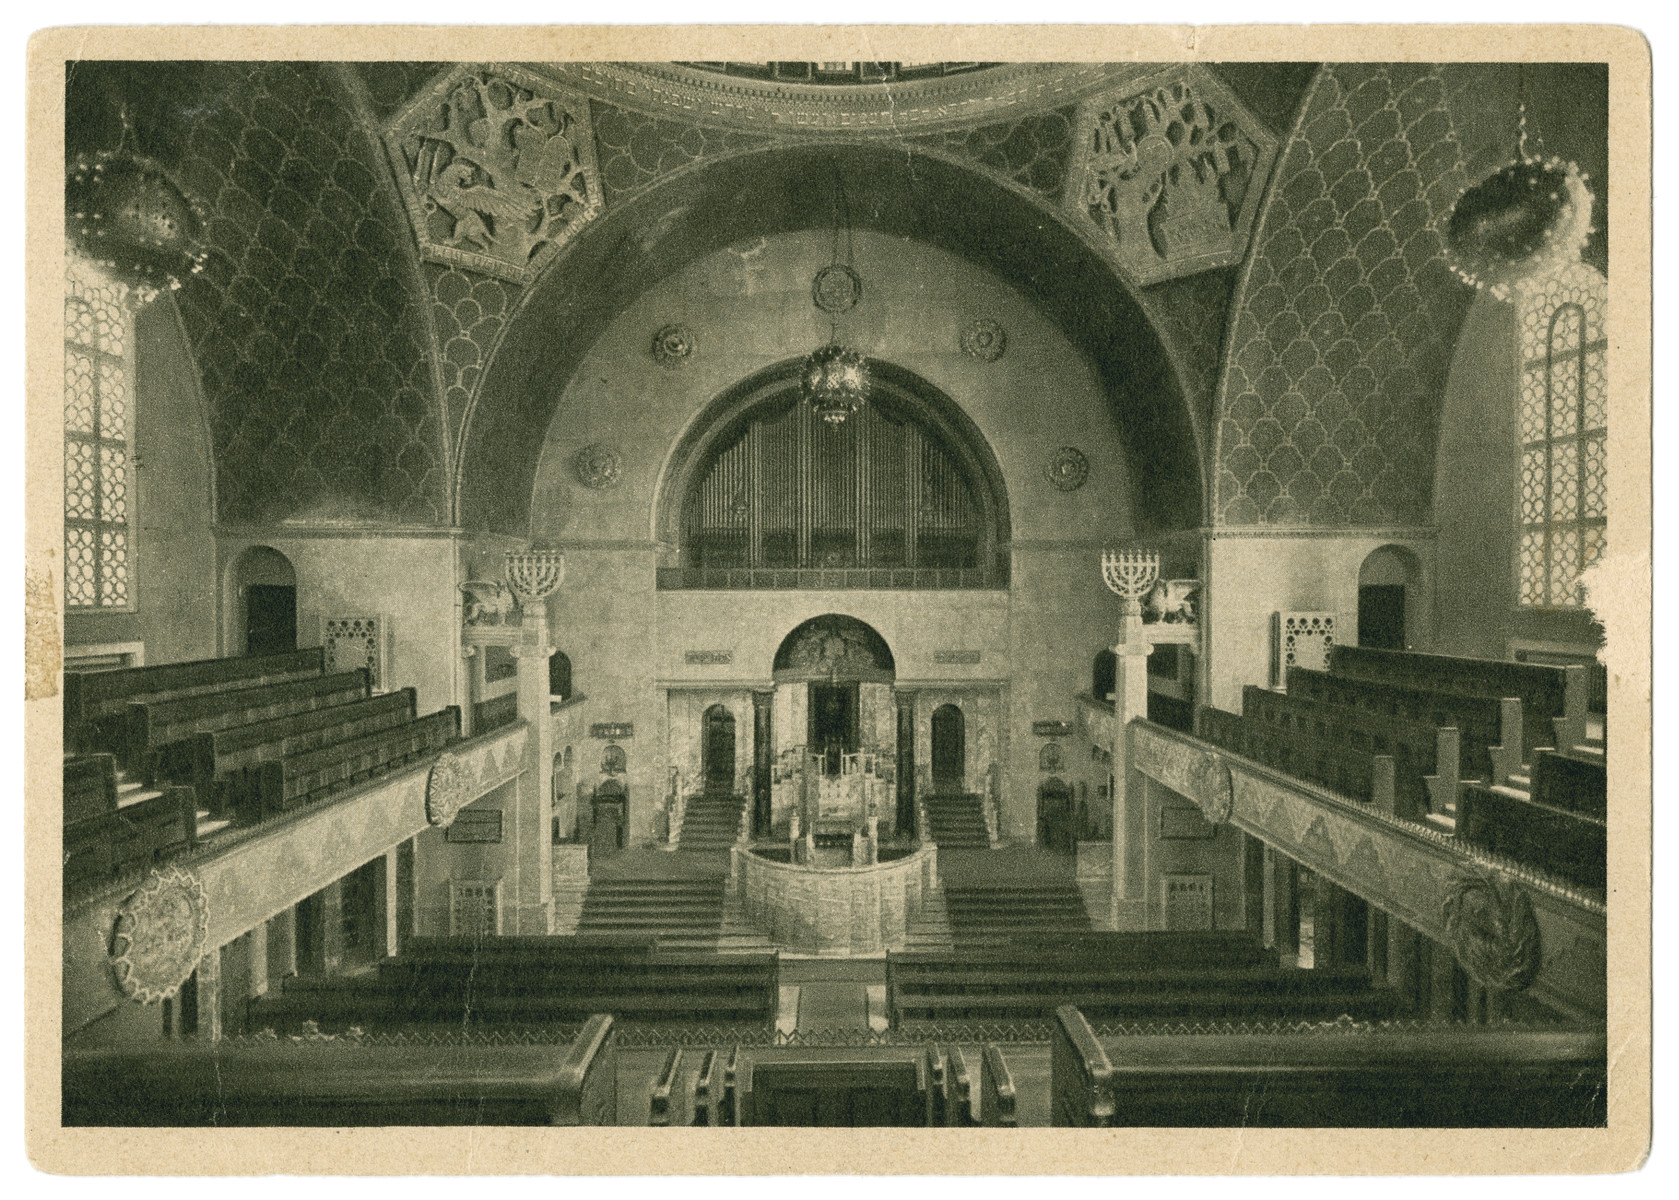 Interior view of the main sanctuary of the Augsburg synagogue.